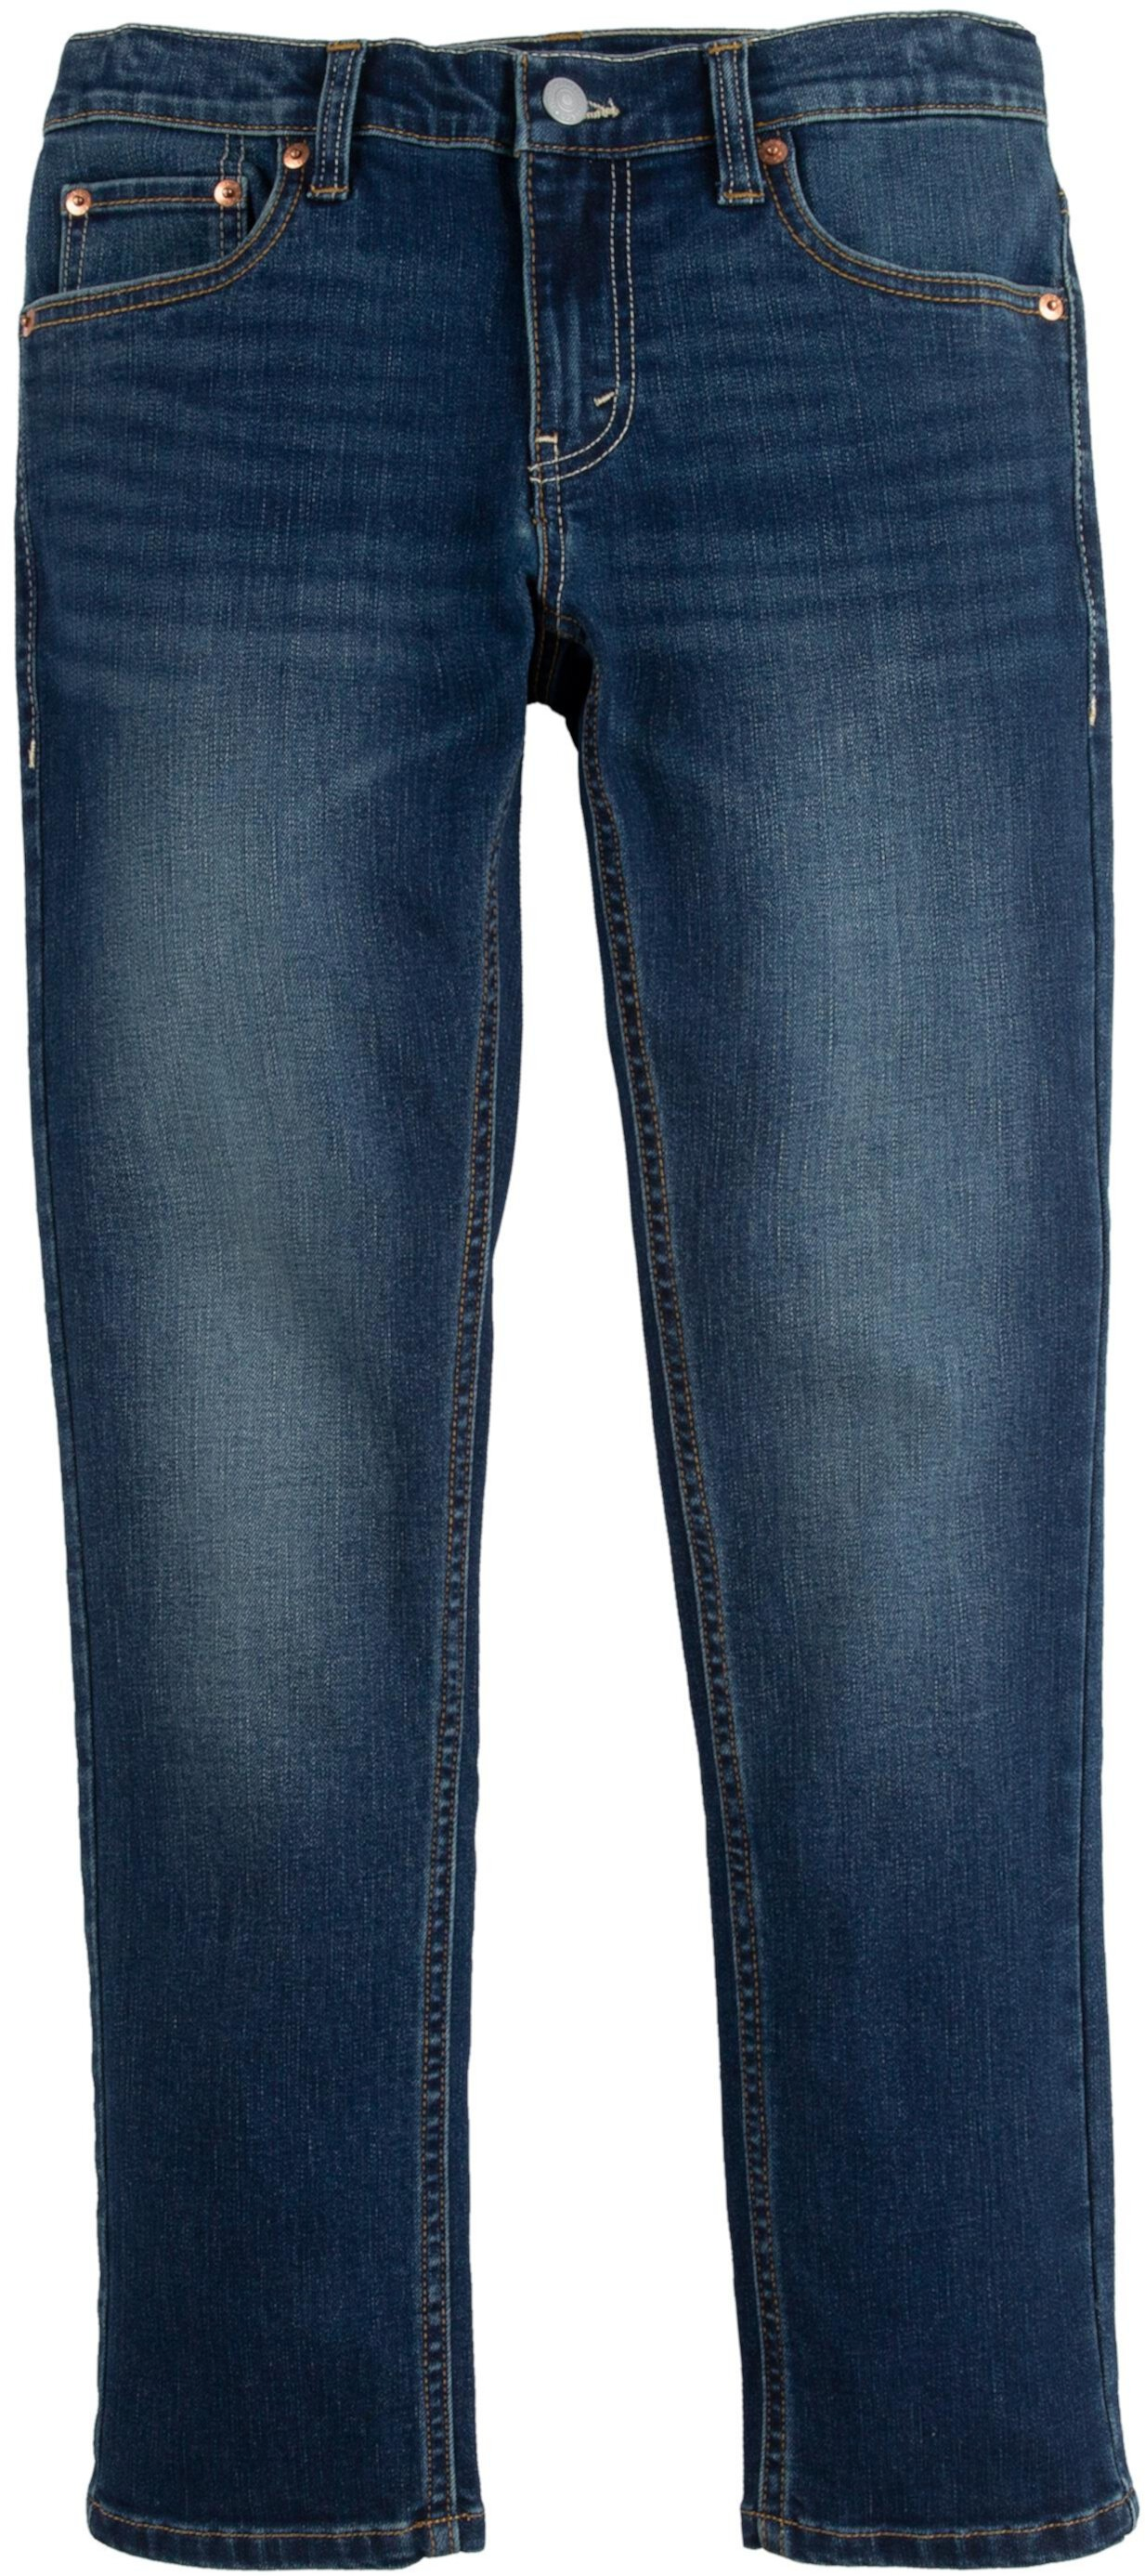 512 Slim Taper Performance Jeans (Big Kids) Levi's® Kids